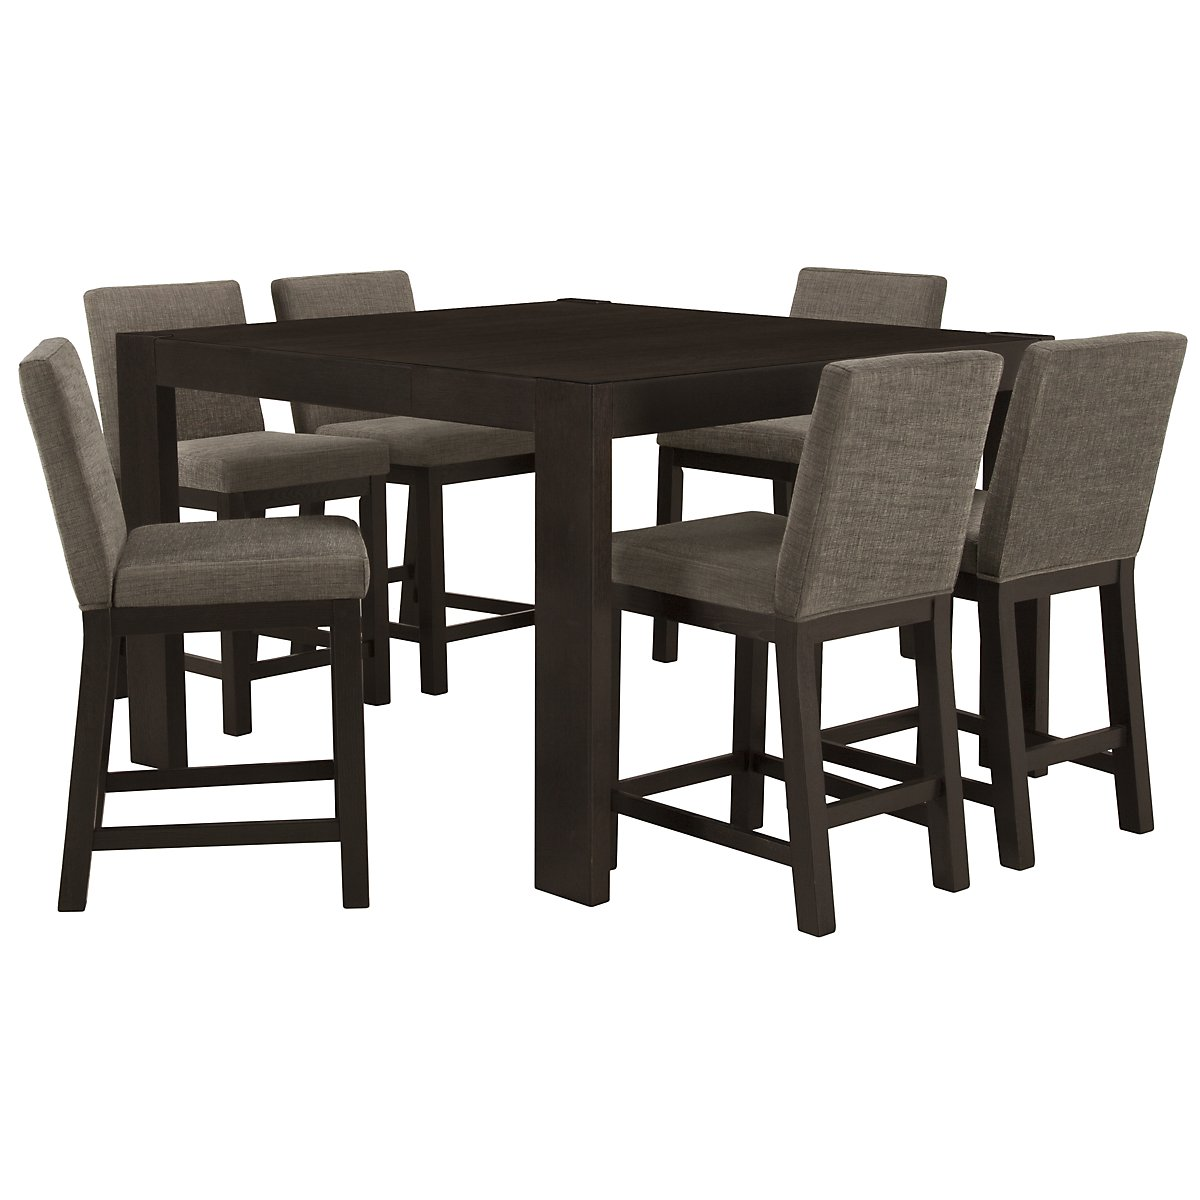 Tocara Dark Tone High Table & 4 Upholstered Barstools